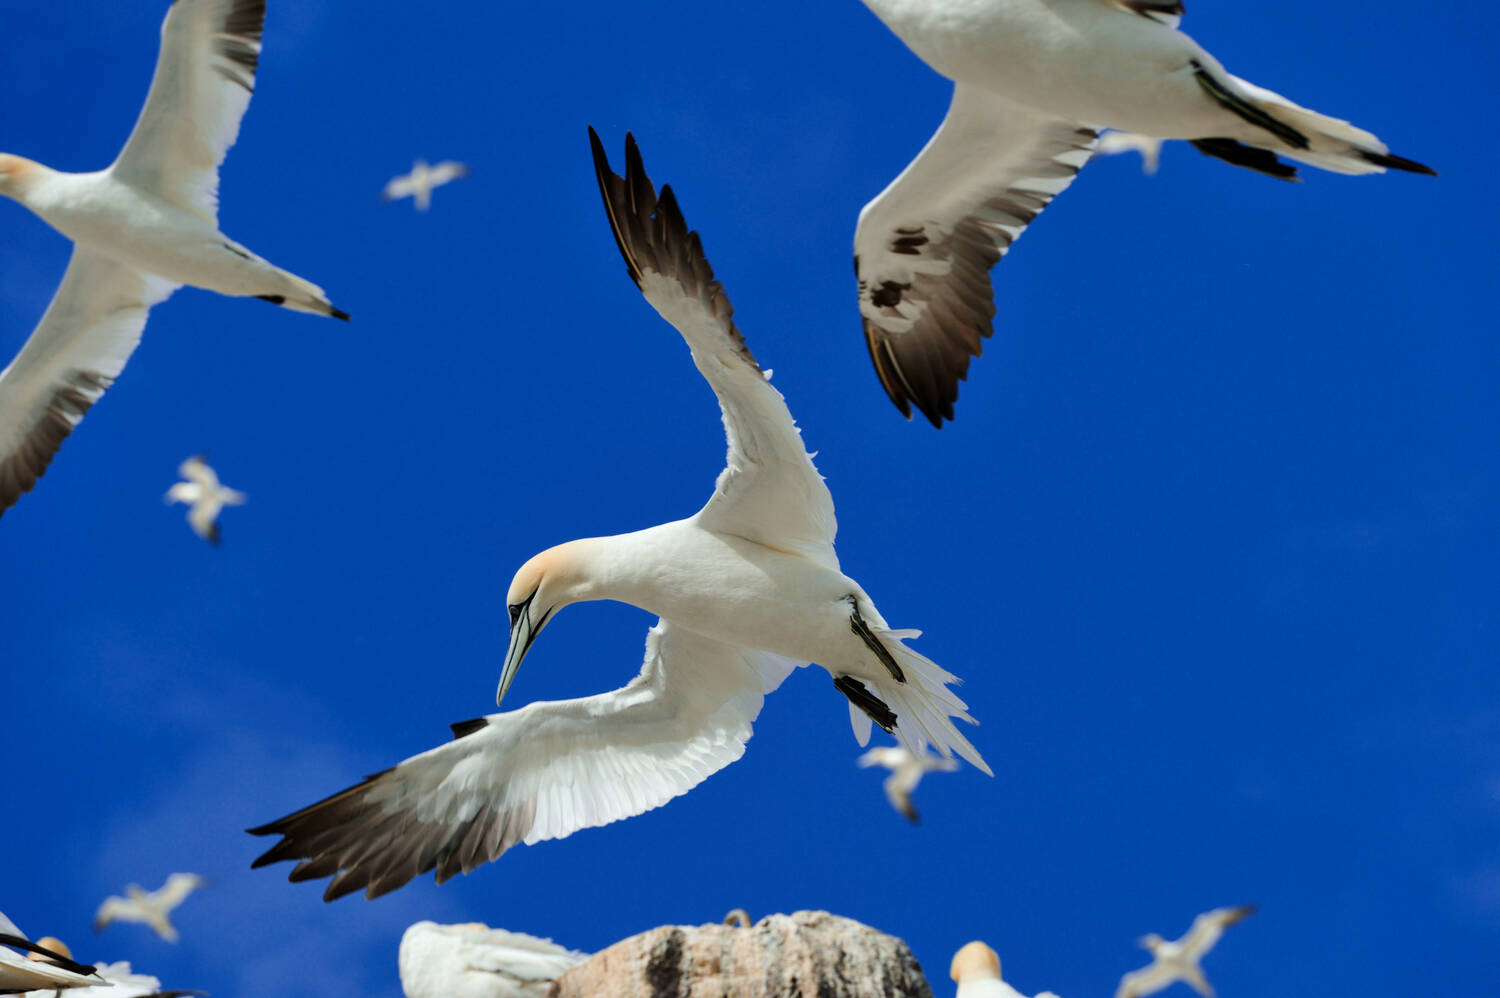 Gannets flying